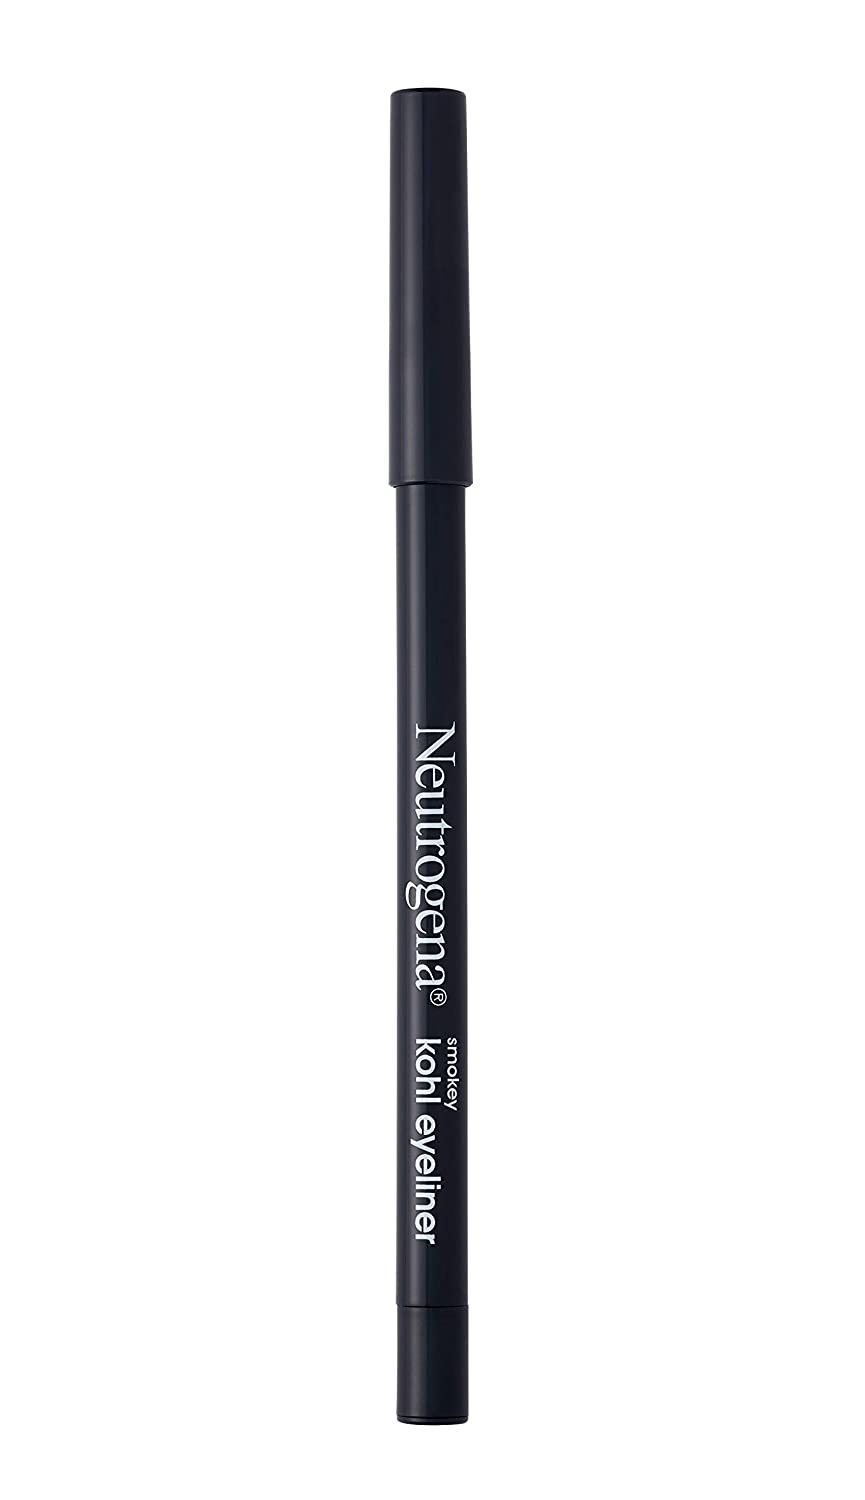 Neutrogena Smokey Kohl Eyeliner with Antioxidant Vitamin E, Water-Resistant & Smooth-Gliding Eyeliner Makeup, Smokey Gray, 0.014 oz